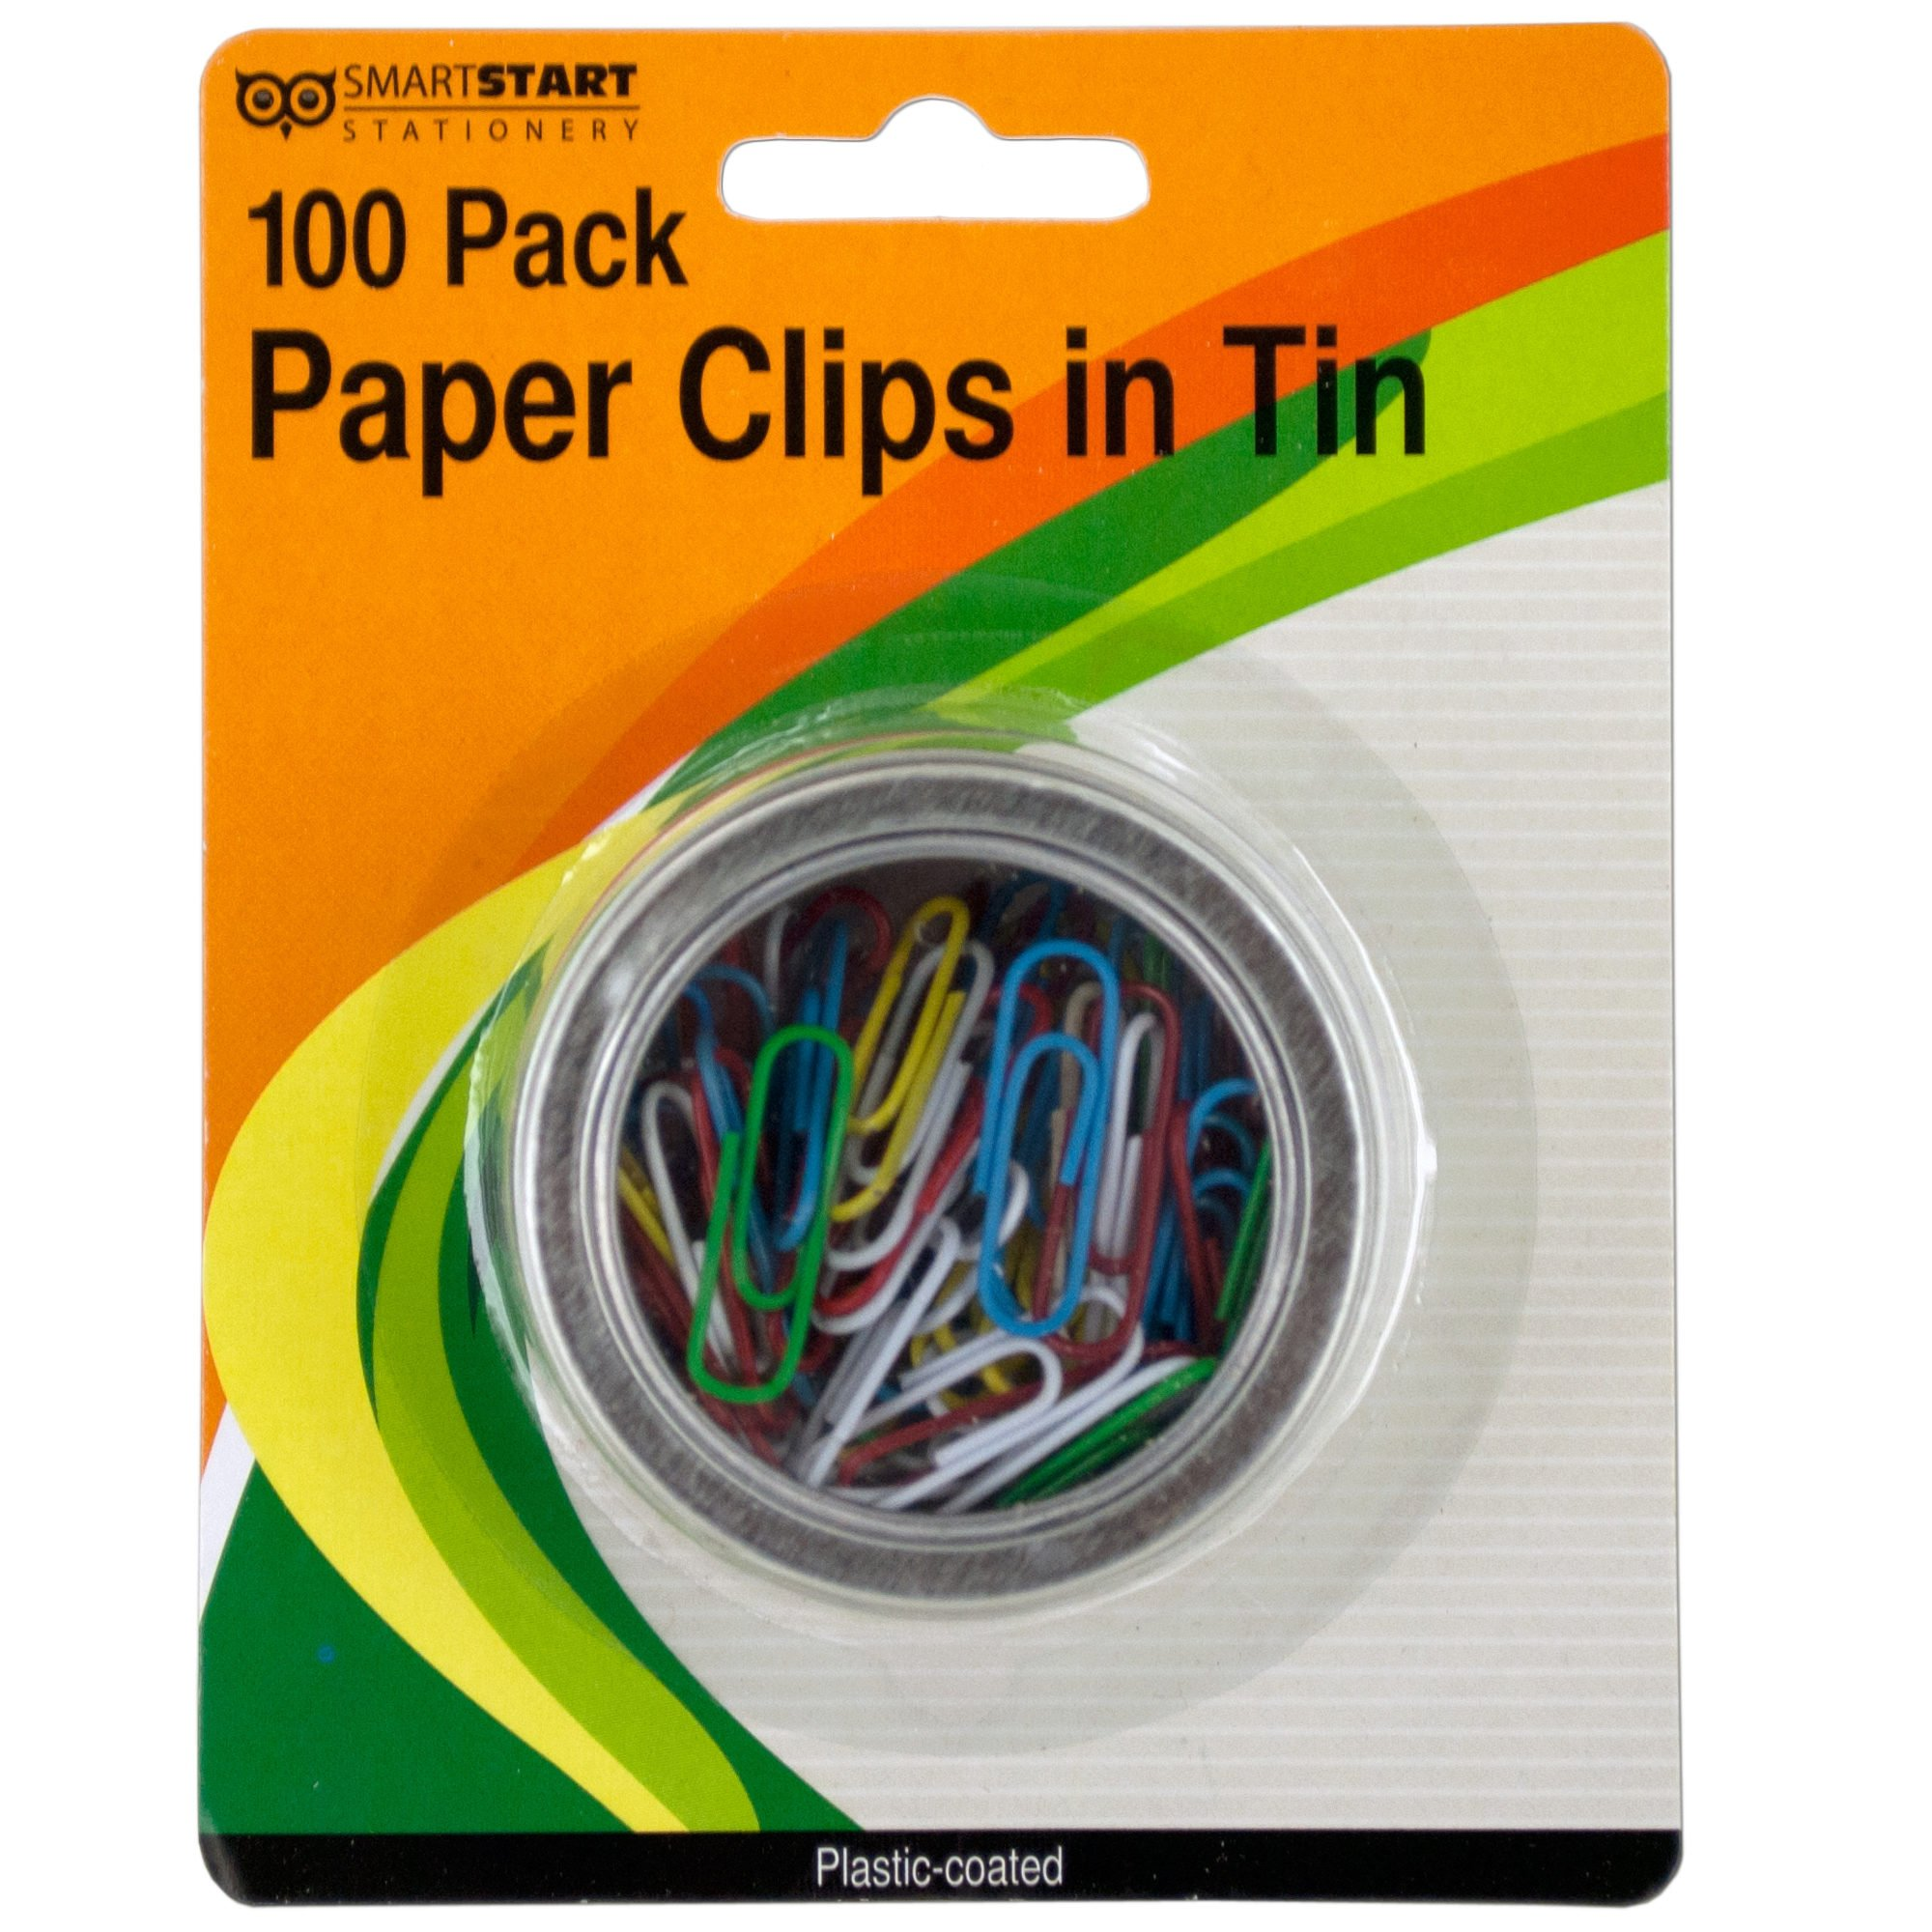 123-Wholesale - Set of 36 Plastic Coated Paper Clips in Round Tin - School & Office Supplies Paper Clips, Clamps & Punches